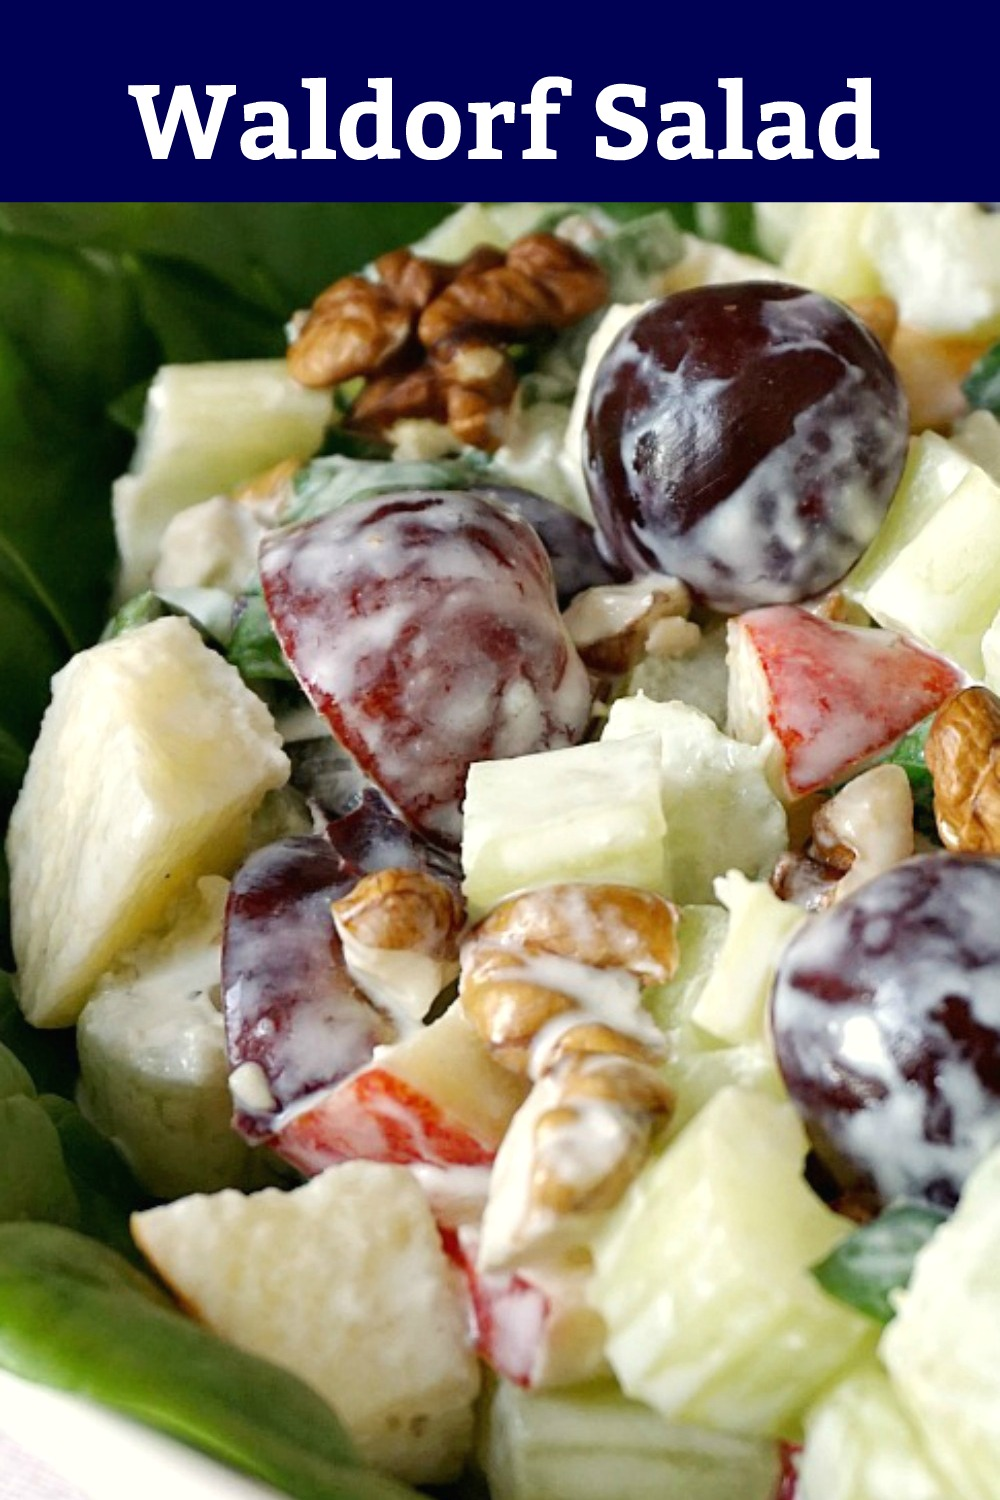 Close-up shoot of waldorf salad